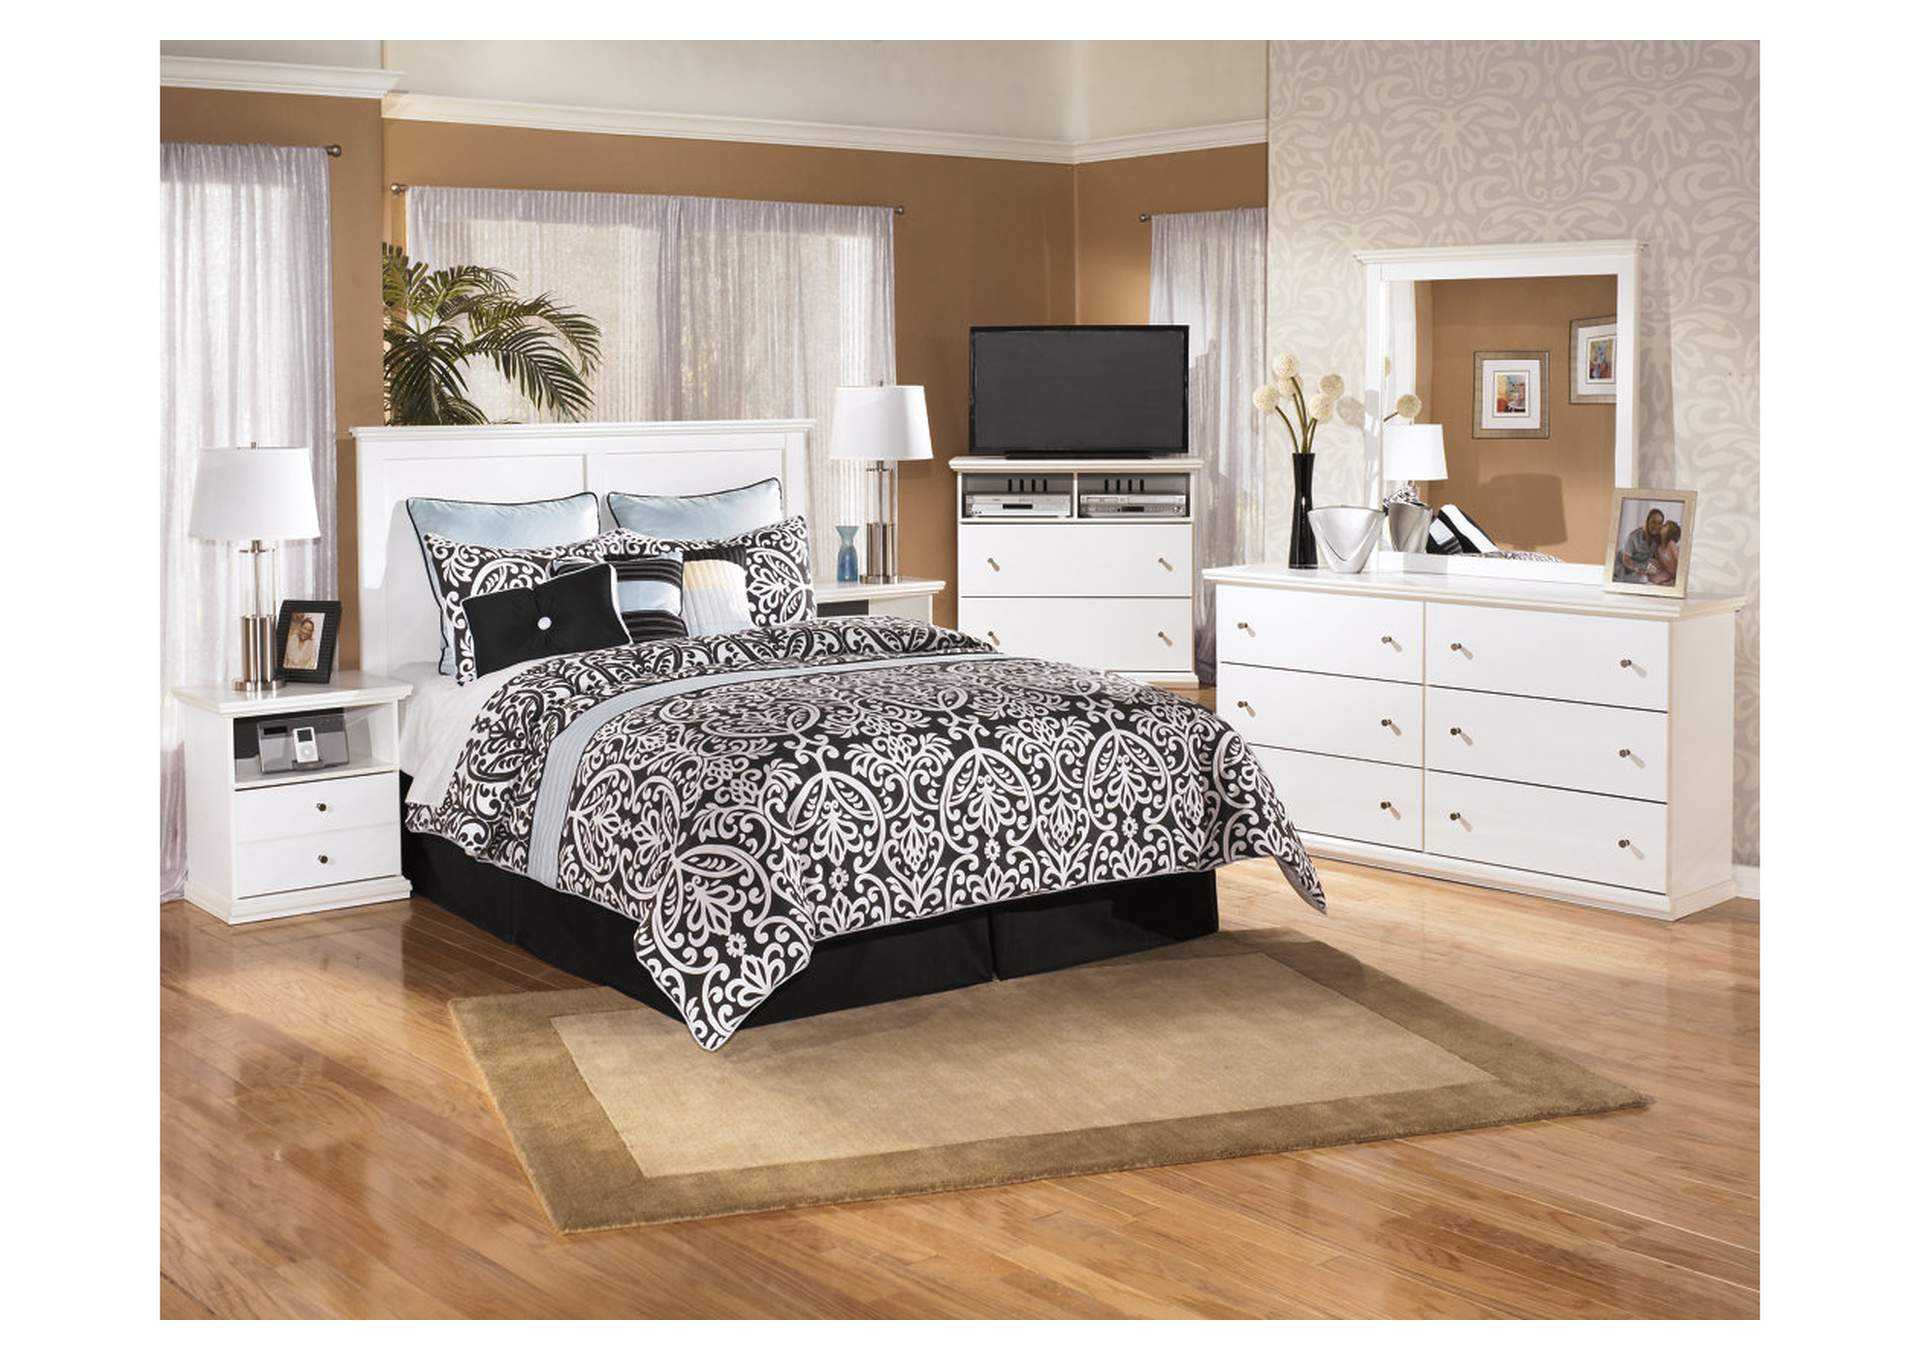 Bostwick Shoals Queen/Full Panel Headboard,Direct To Consumer Express